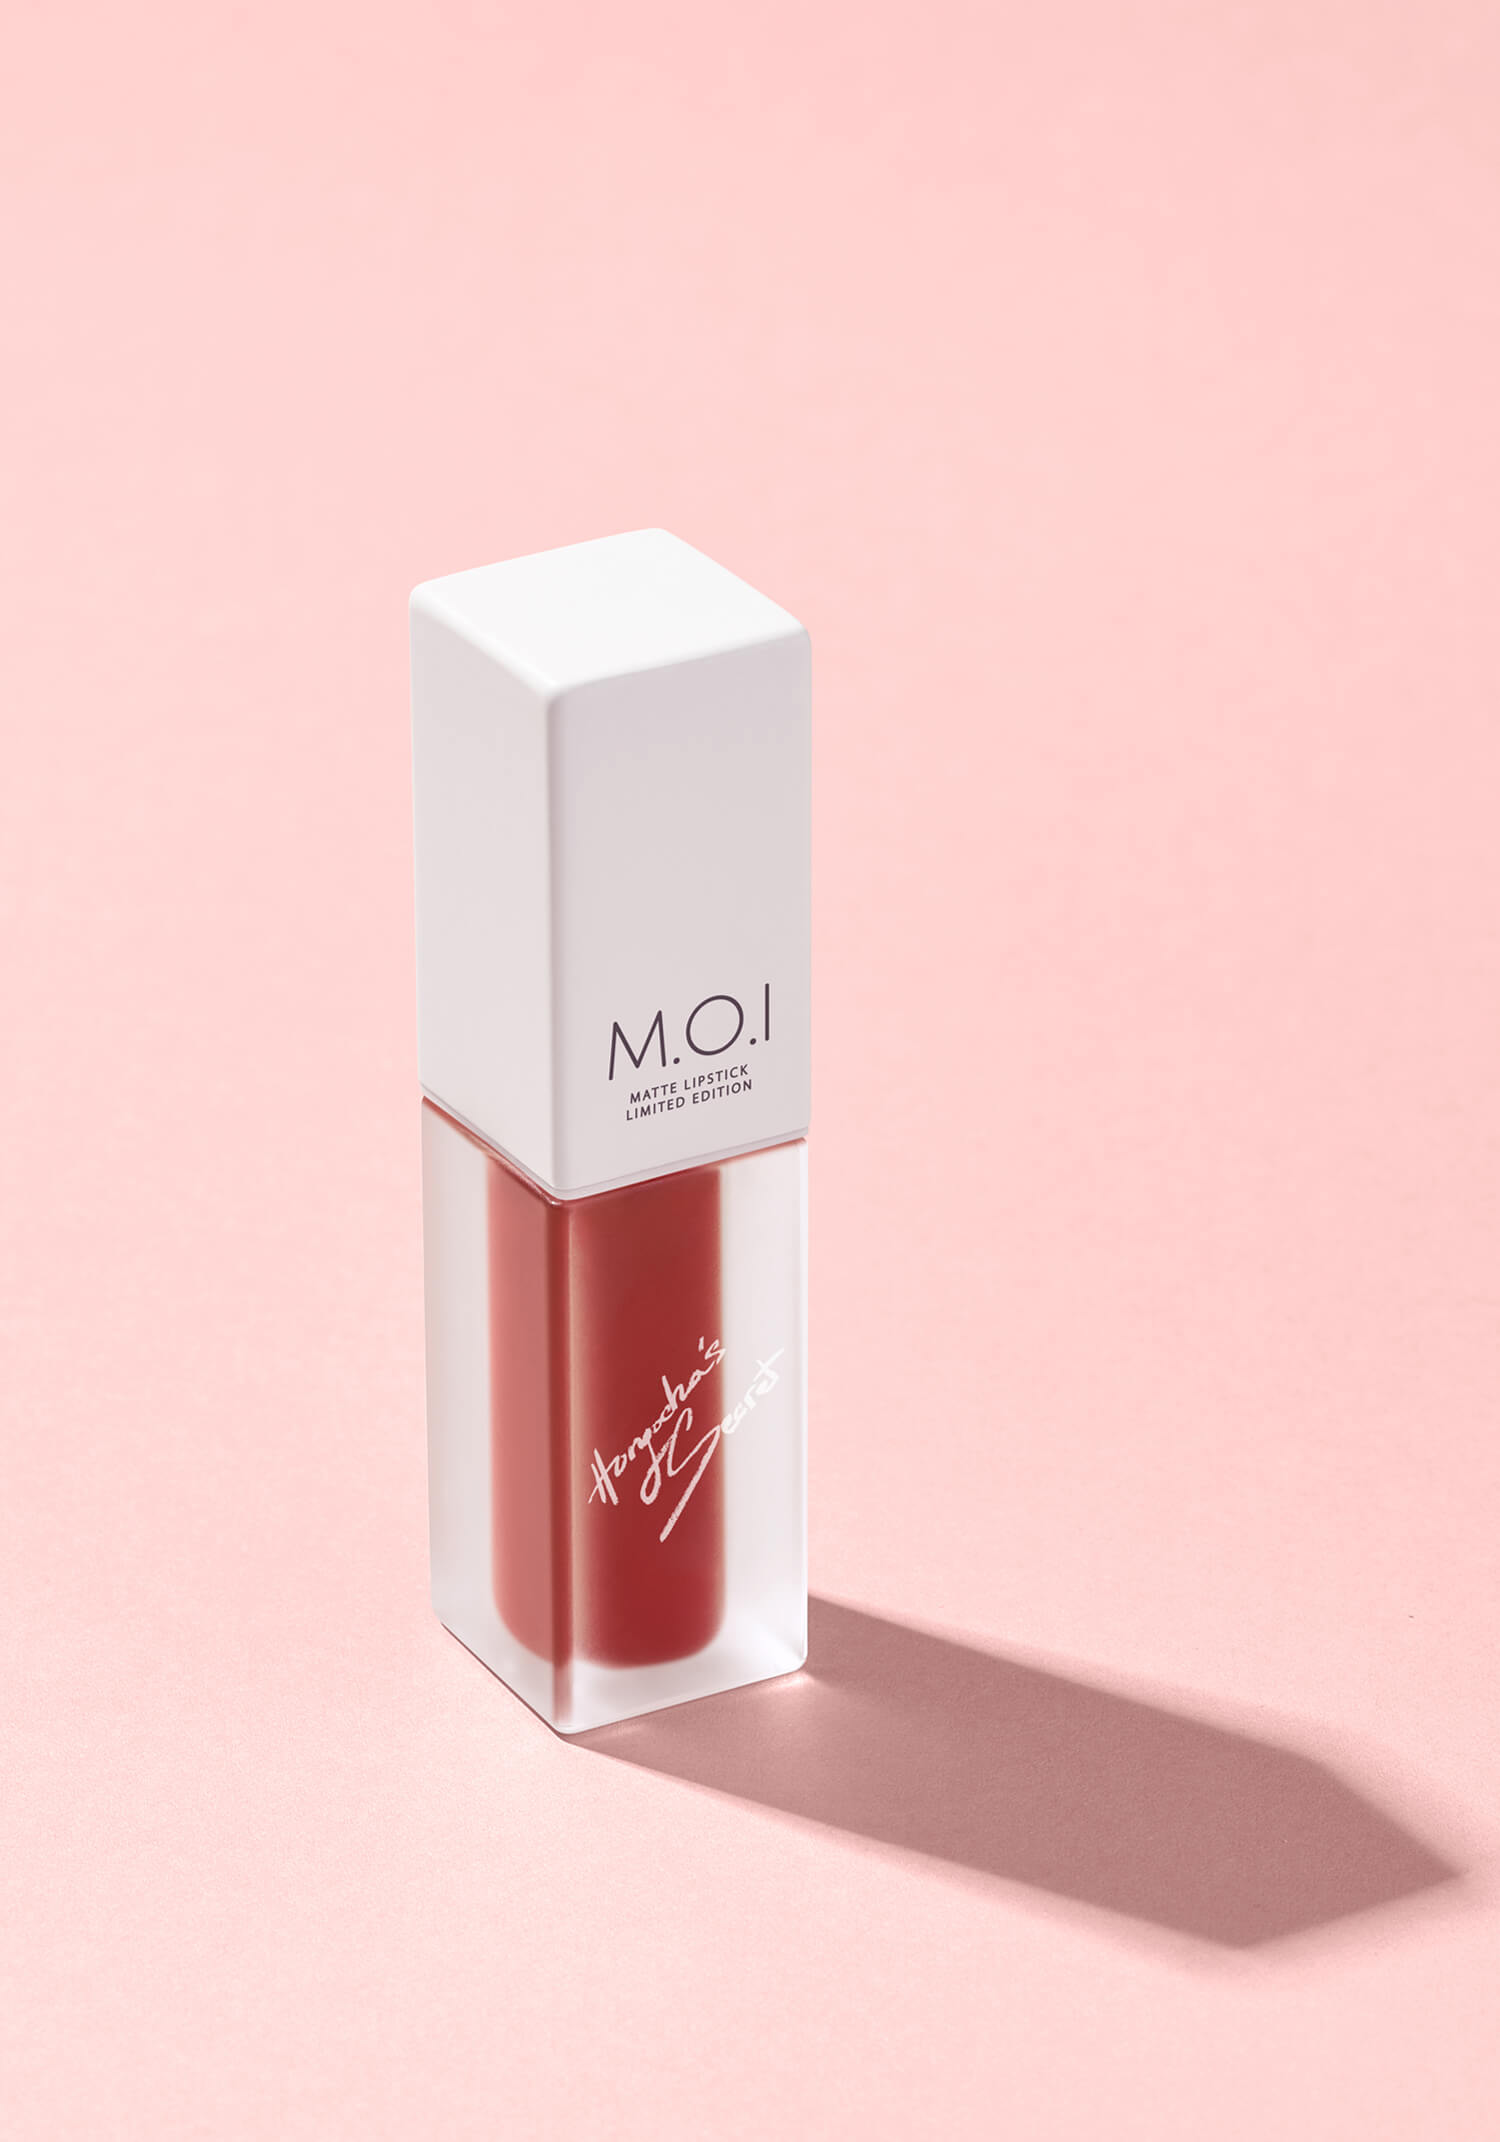 M.O.I COSMETICS GIRL'S NIGHT (Matte lipstick)